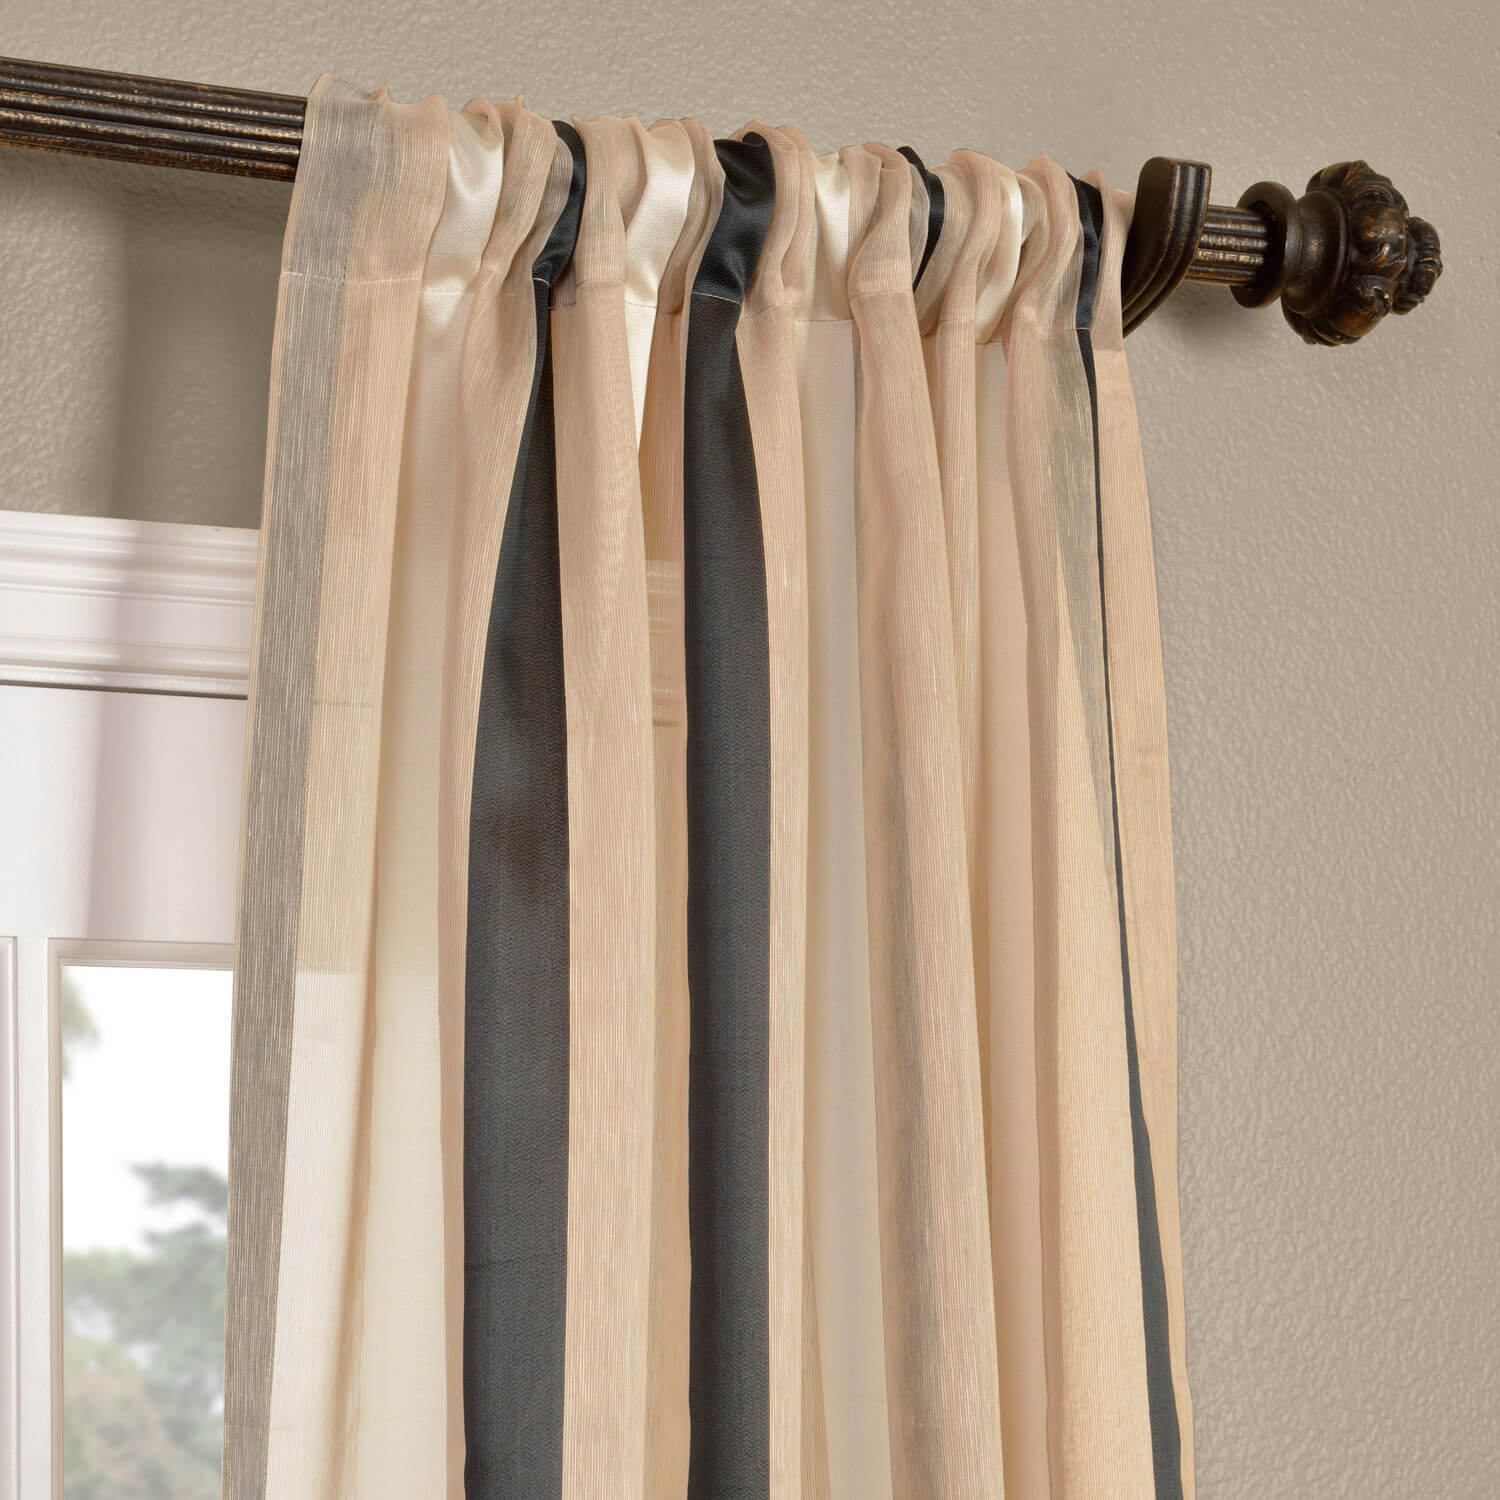 Linen Stripe Kitchen Curtains: Carlton Natural Linen Blend Stripe Sheer Curtains